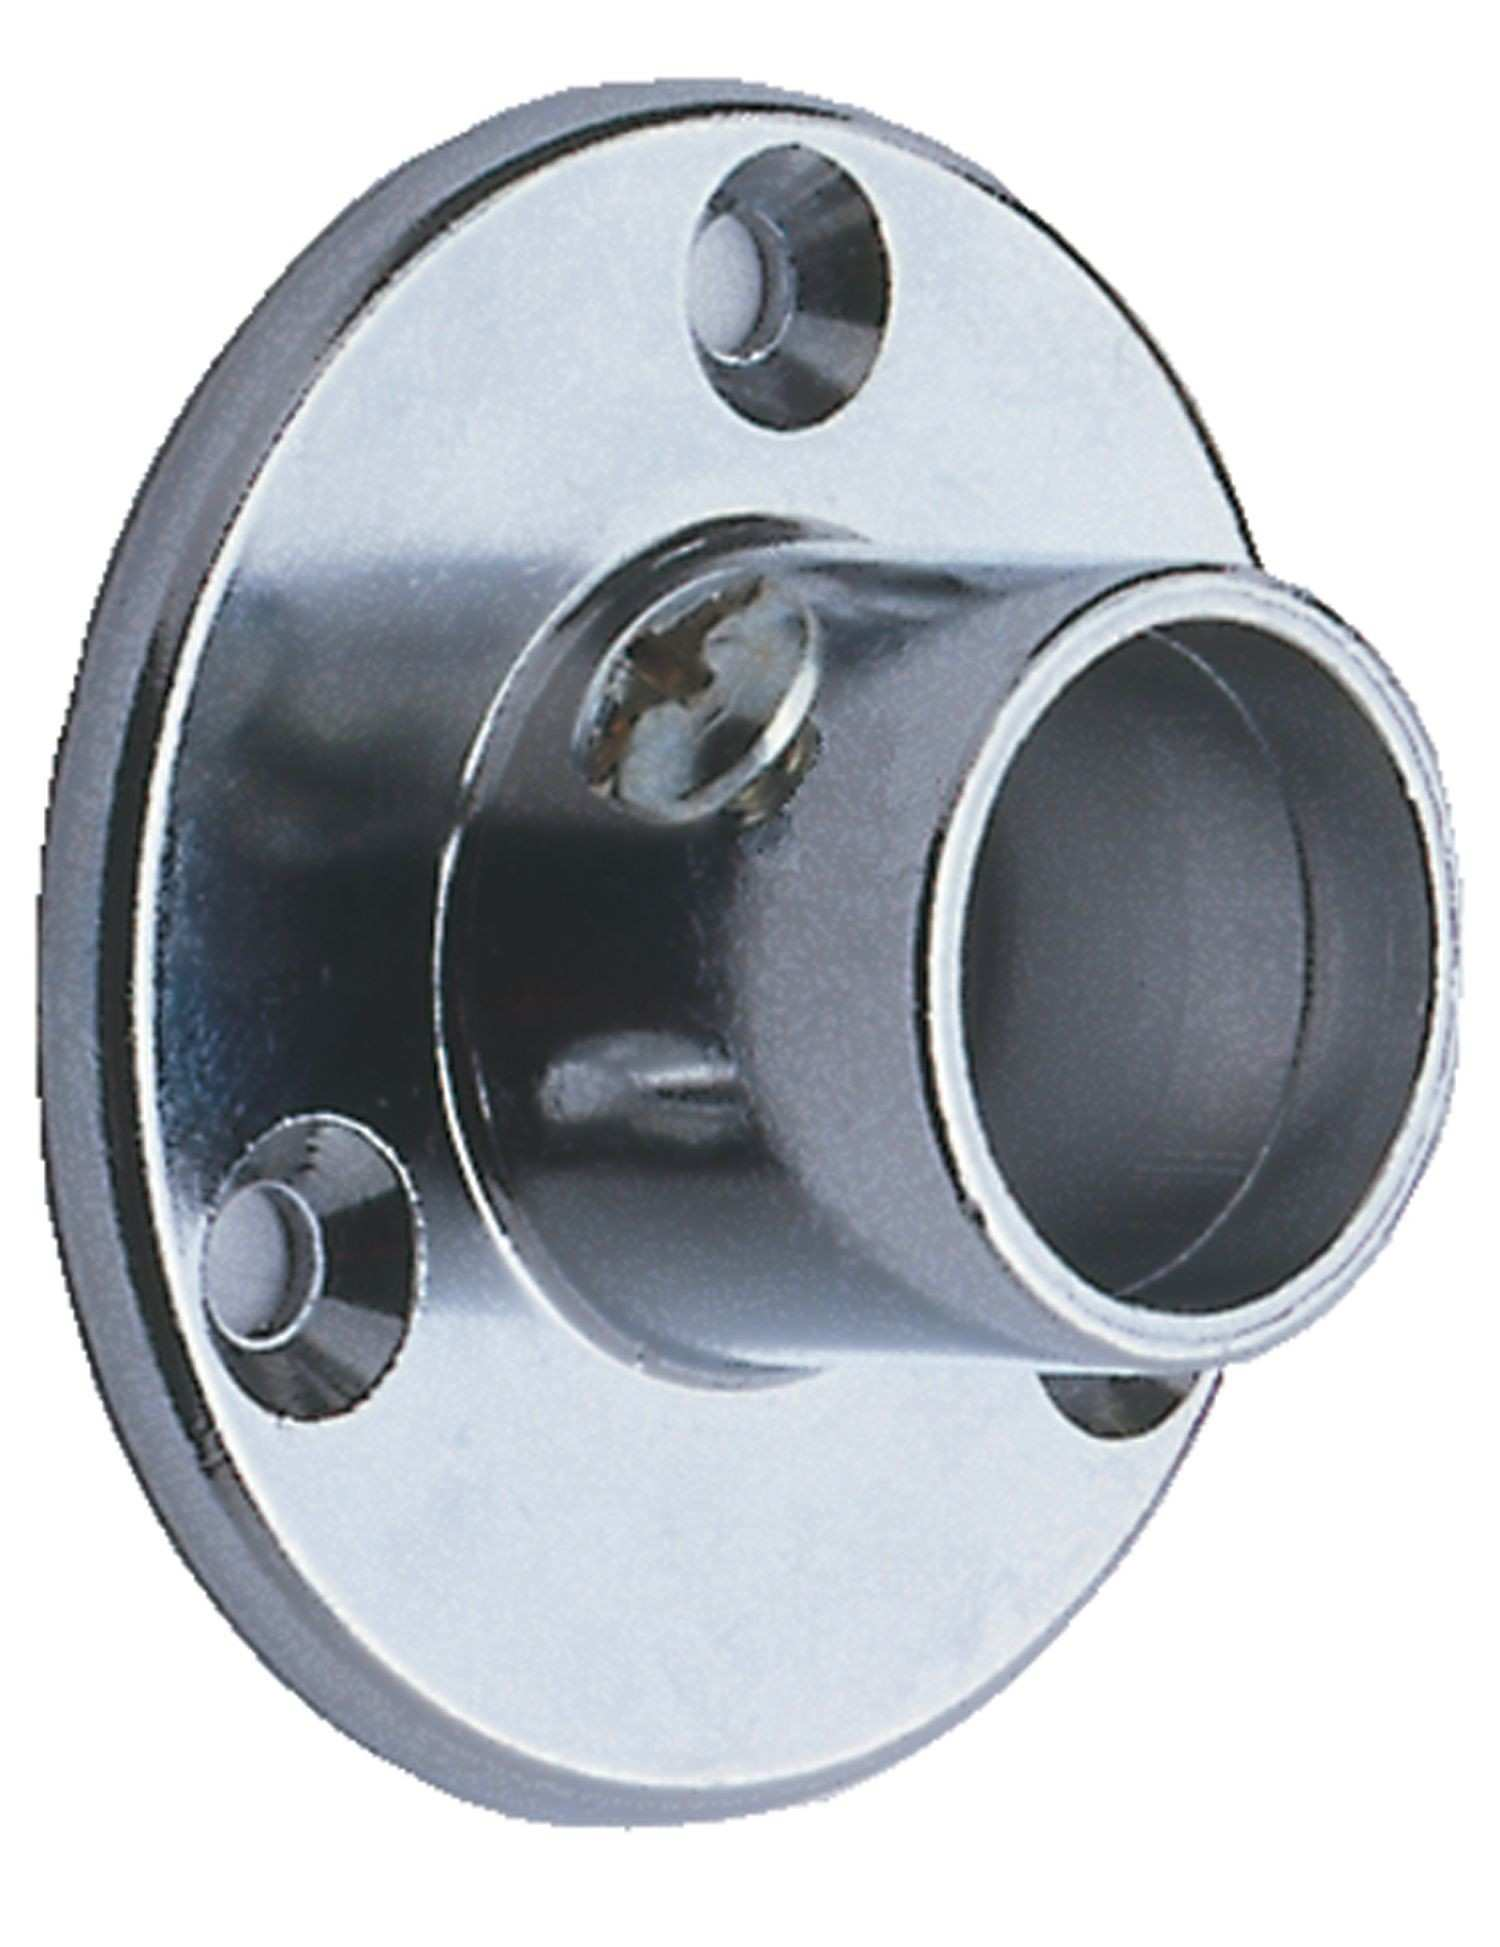 S L1600y Wardrobe Hanging Rail Fittings Picture 1 2 I 5d